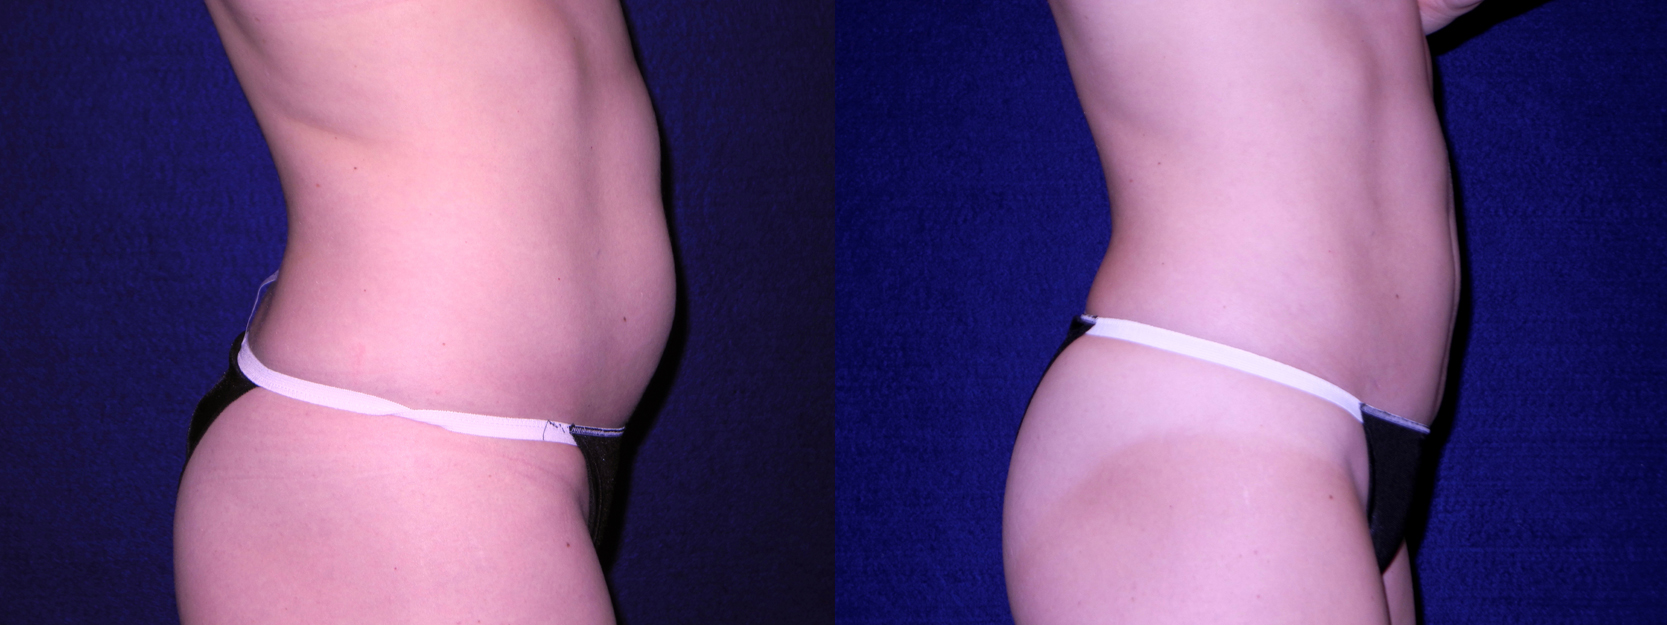 Right Profile View - Tummy Tuck